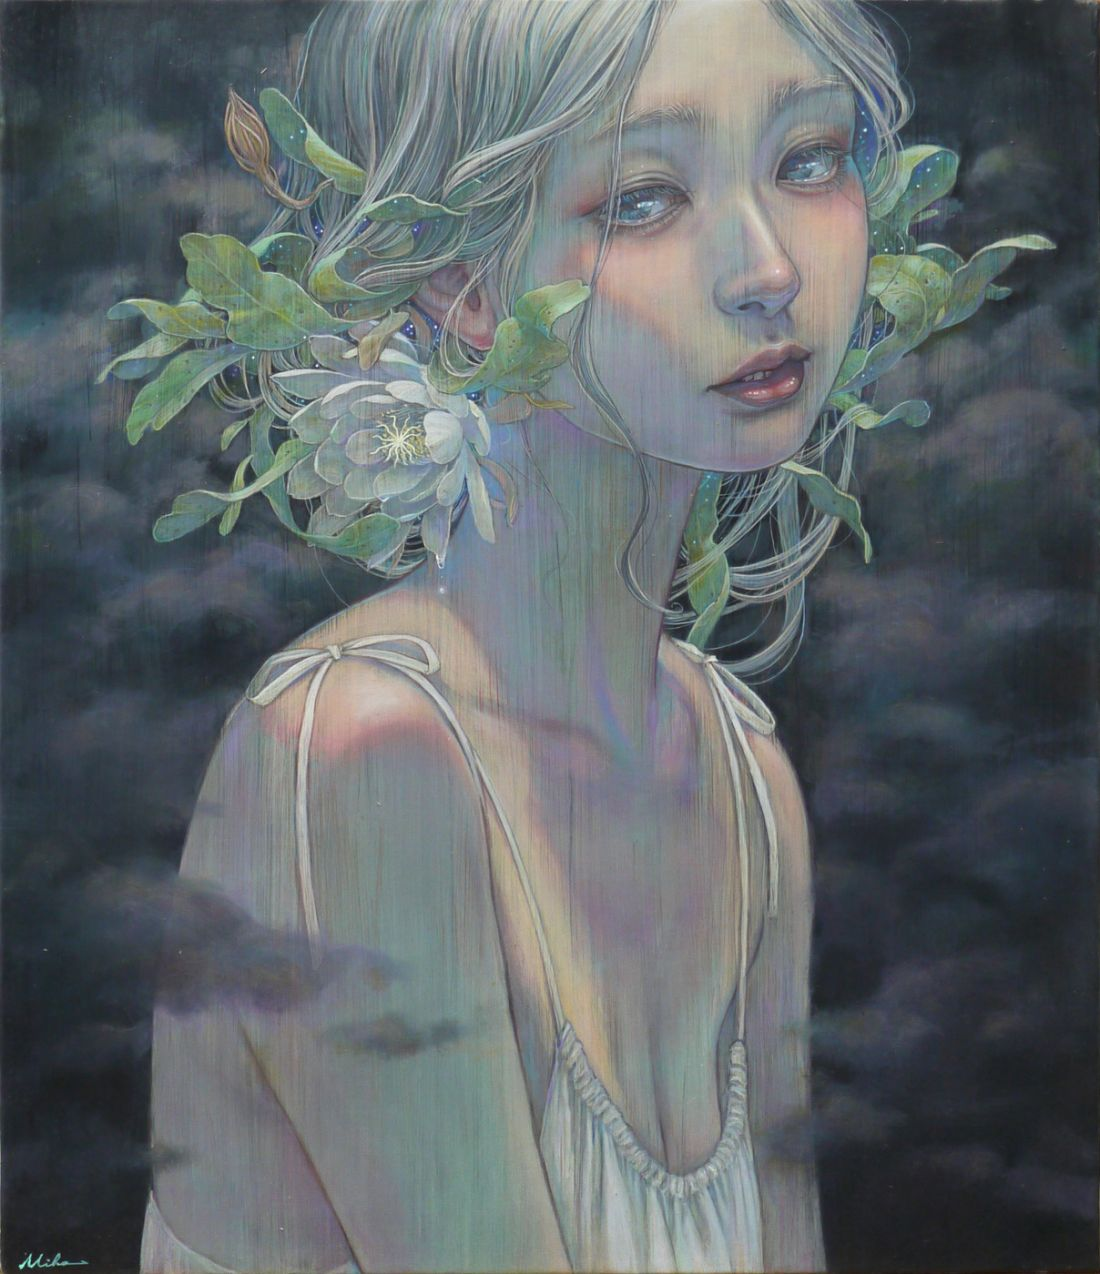 Miho Hirano and Nicoletta Ceccoli share dreamlike oil paintings of fantasy worlds, vulnerability and seduction